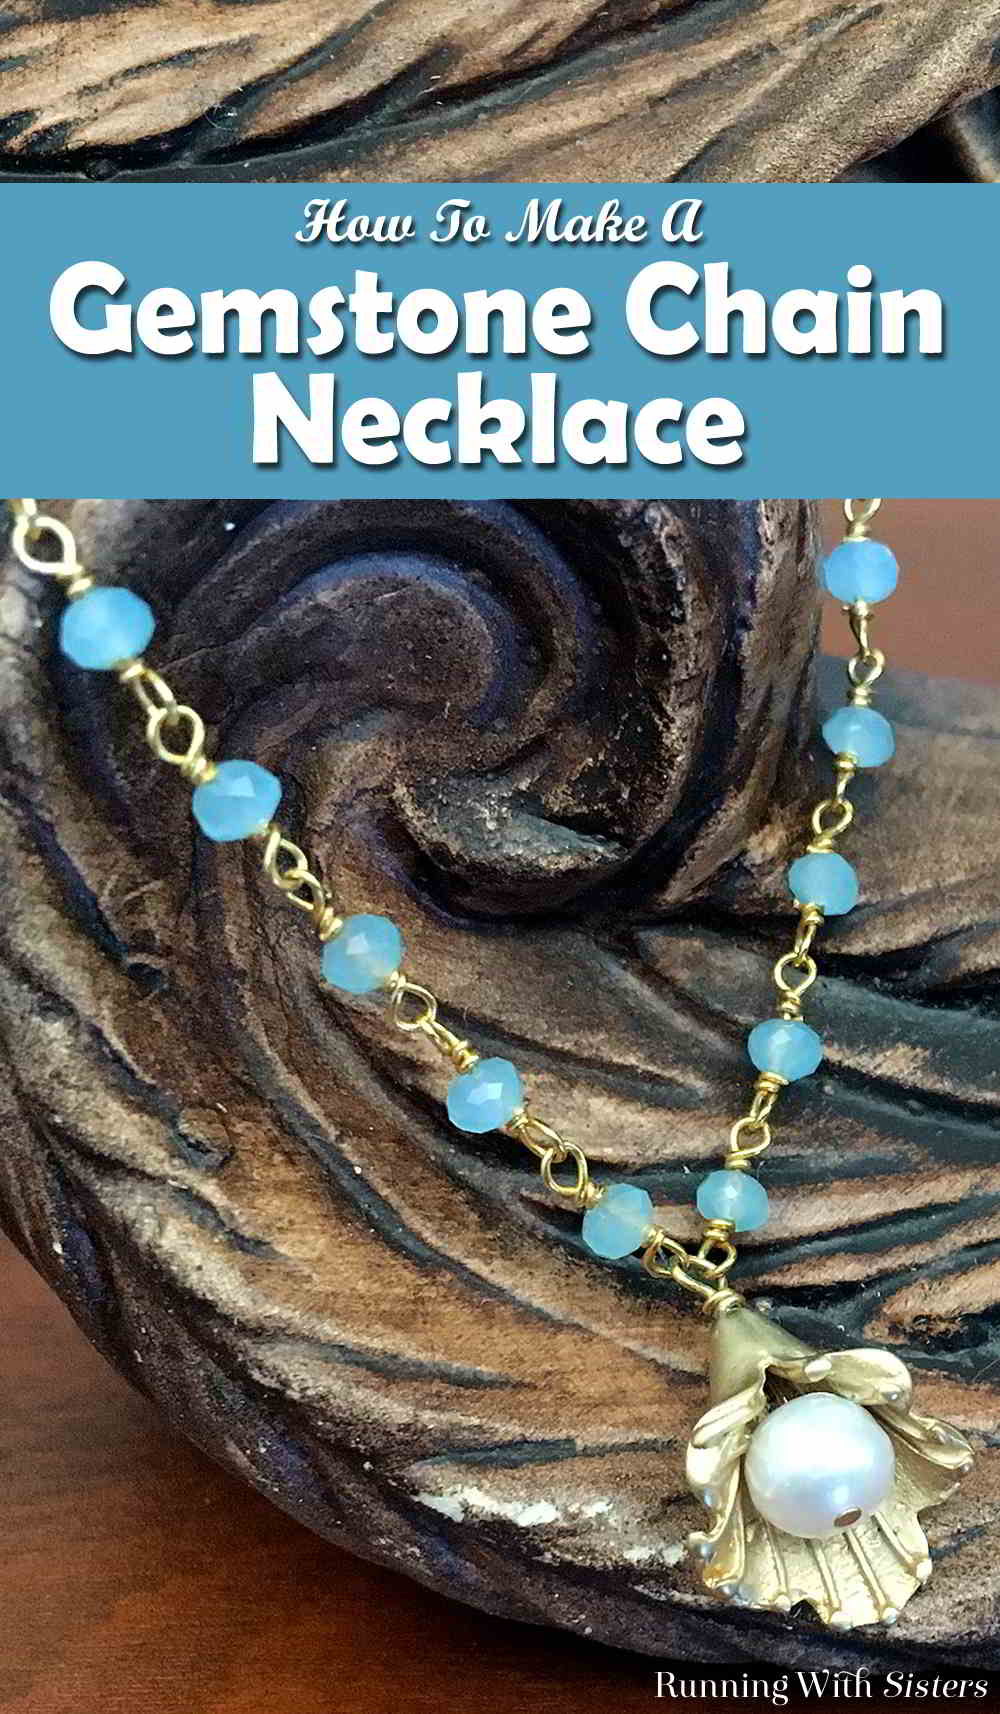 Make a pendant necklace with gemstone chain with this jewelry making tutorial. In this video, we'll show you how to use gemstone chain. So pretty!